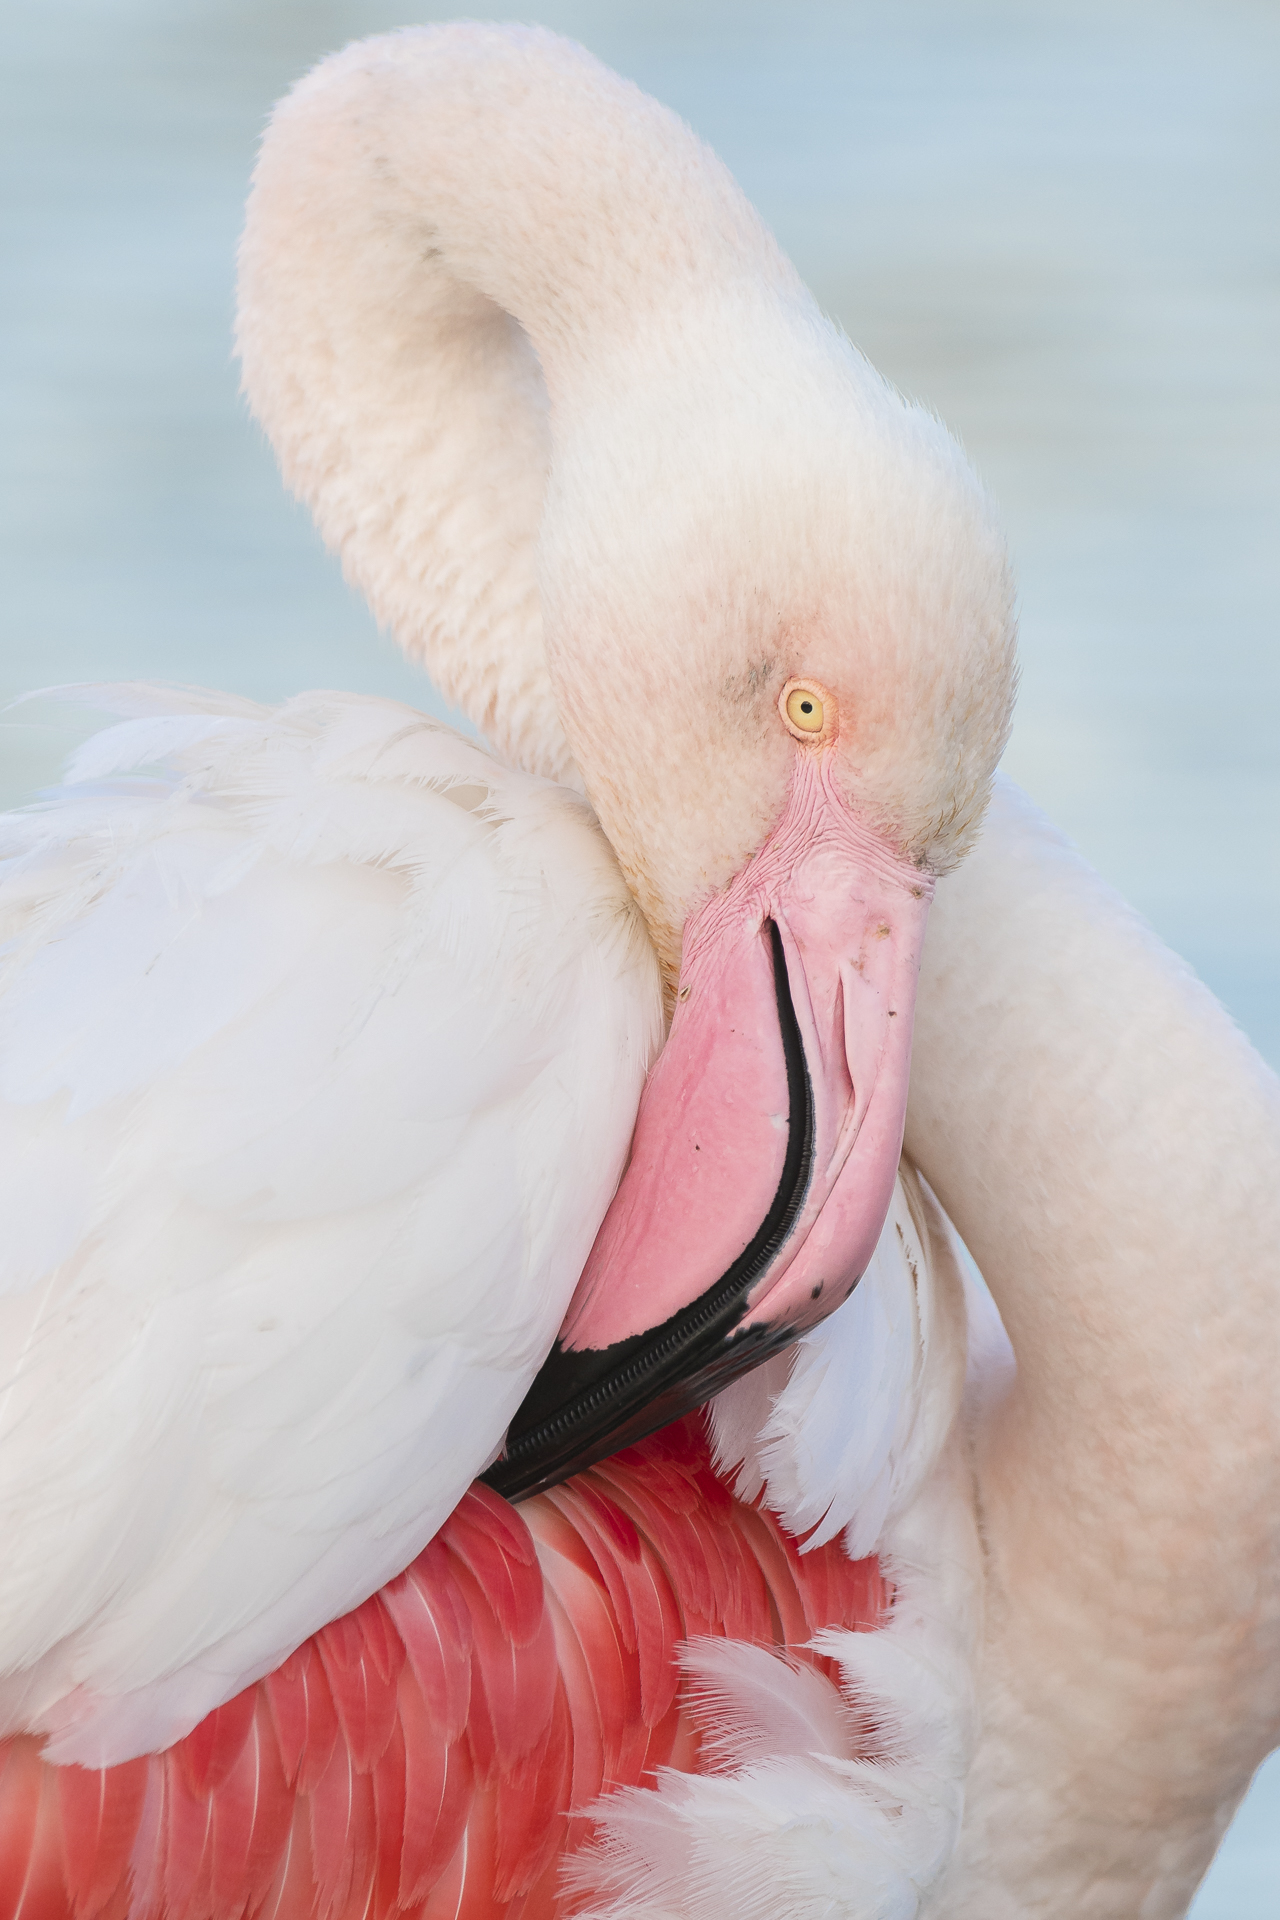 Greater flamingo preening. Pont-de Gau ornithological reserve, Saintes Maries de la Mer, France.